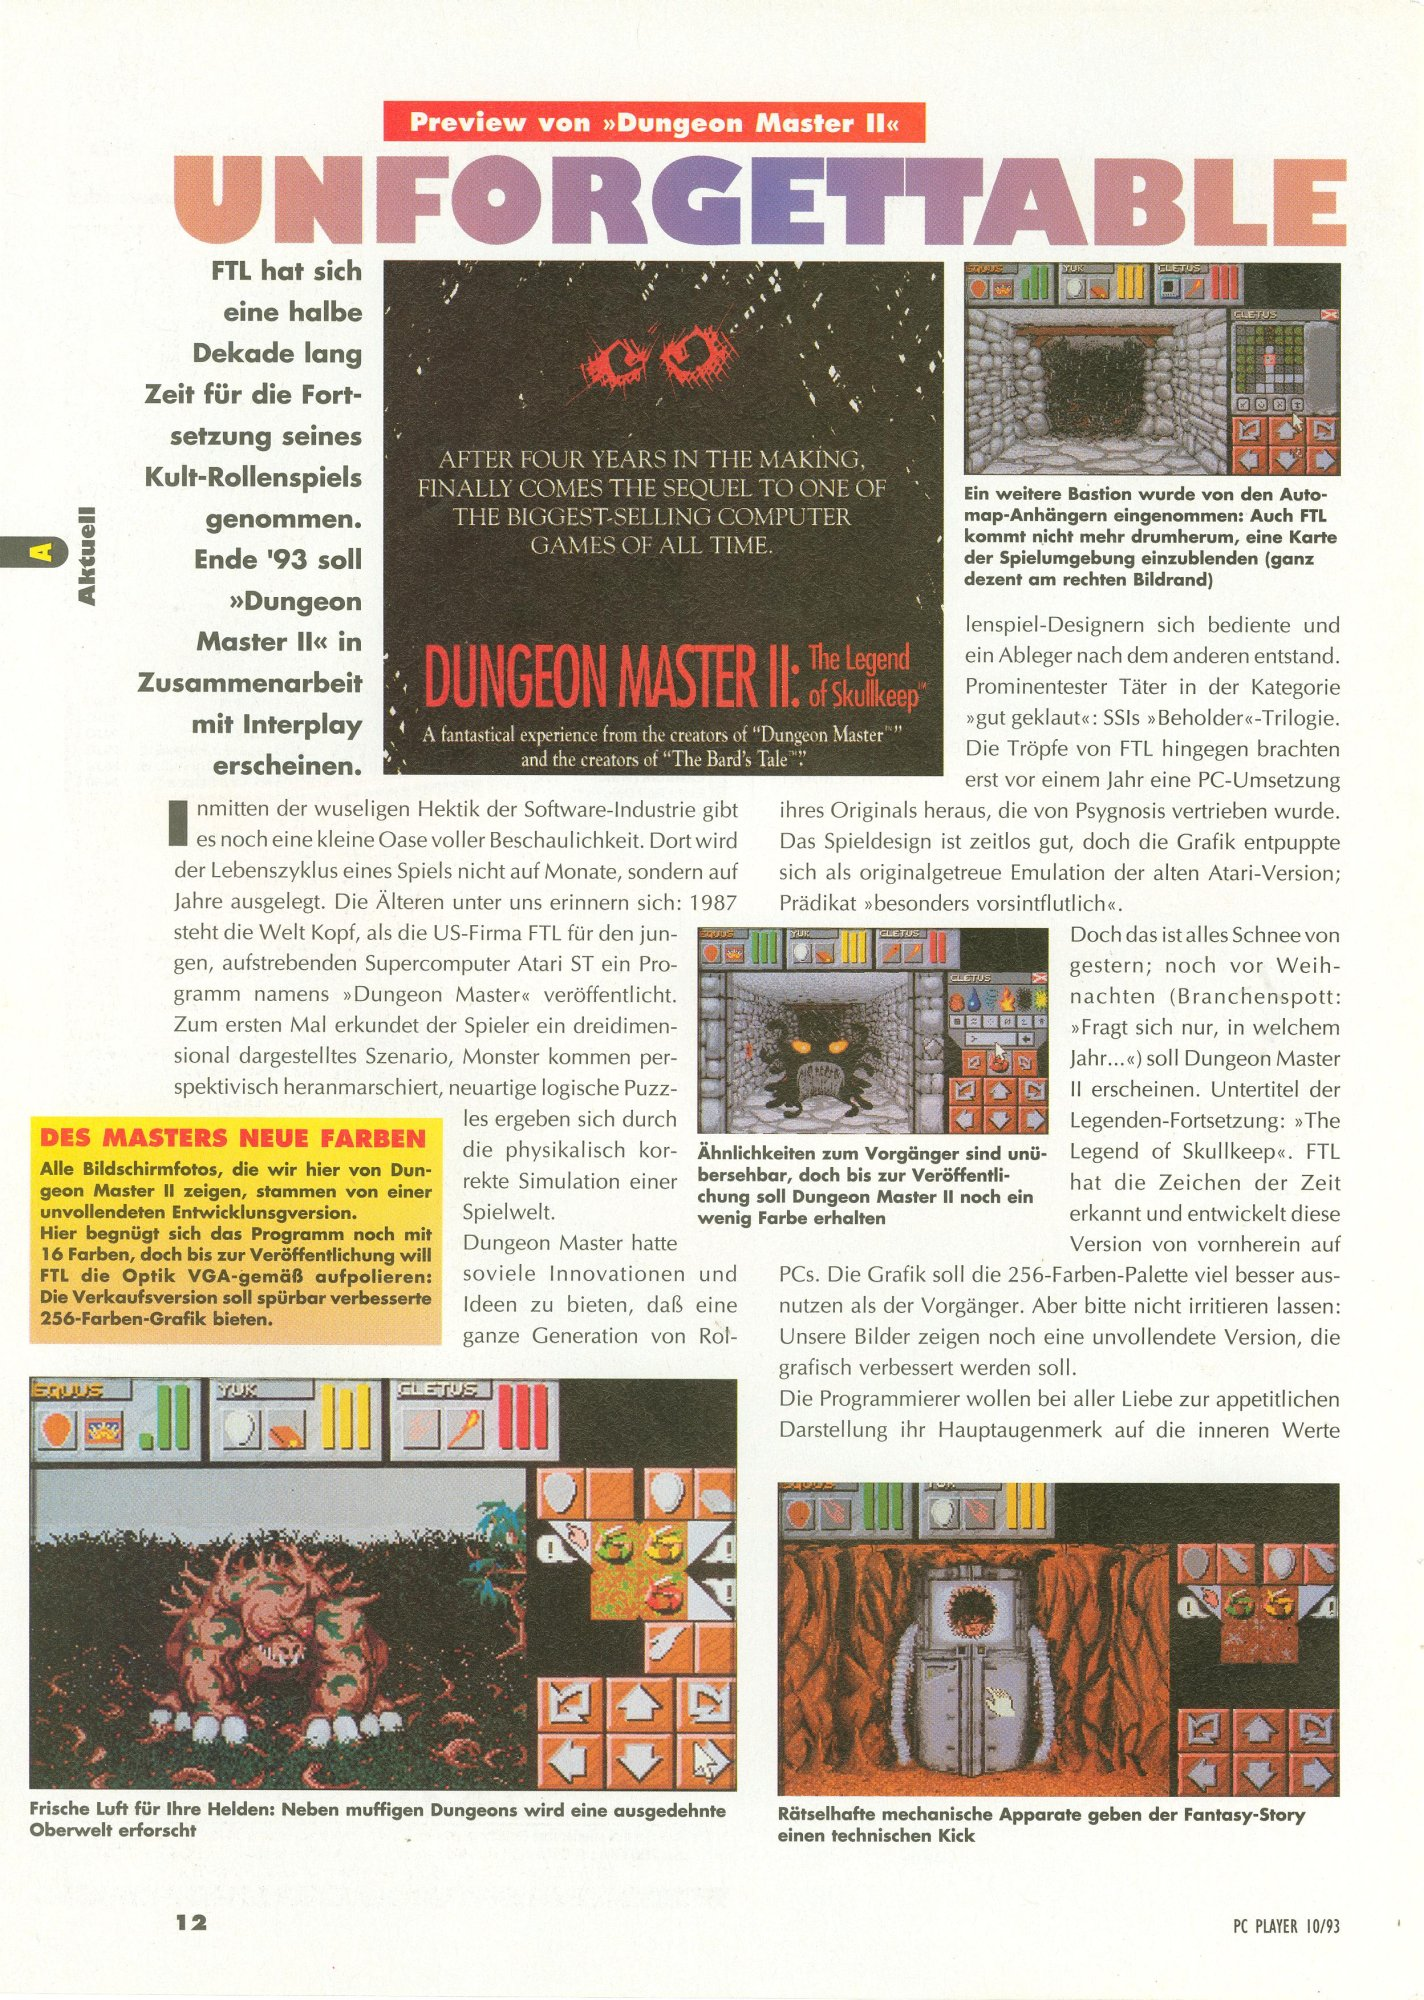 Dungeon Master II for PC Preview published in German magazine 'PC Player', October 1993, Page 12